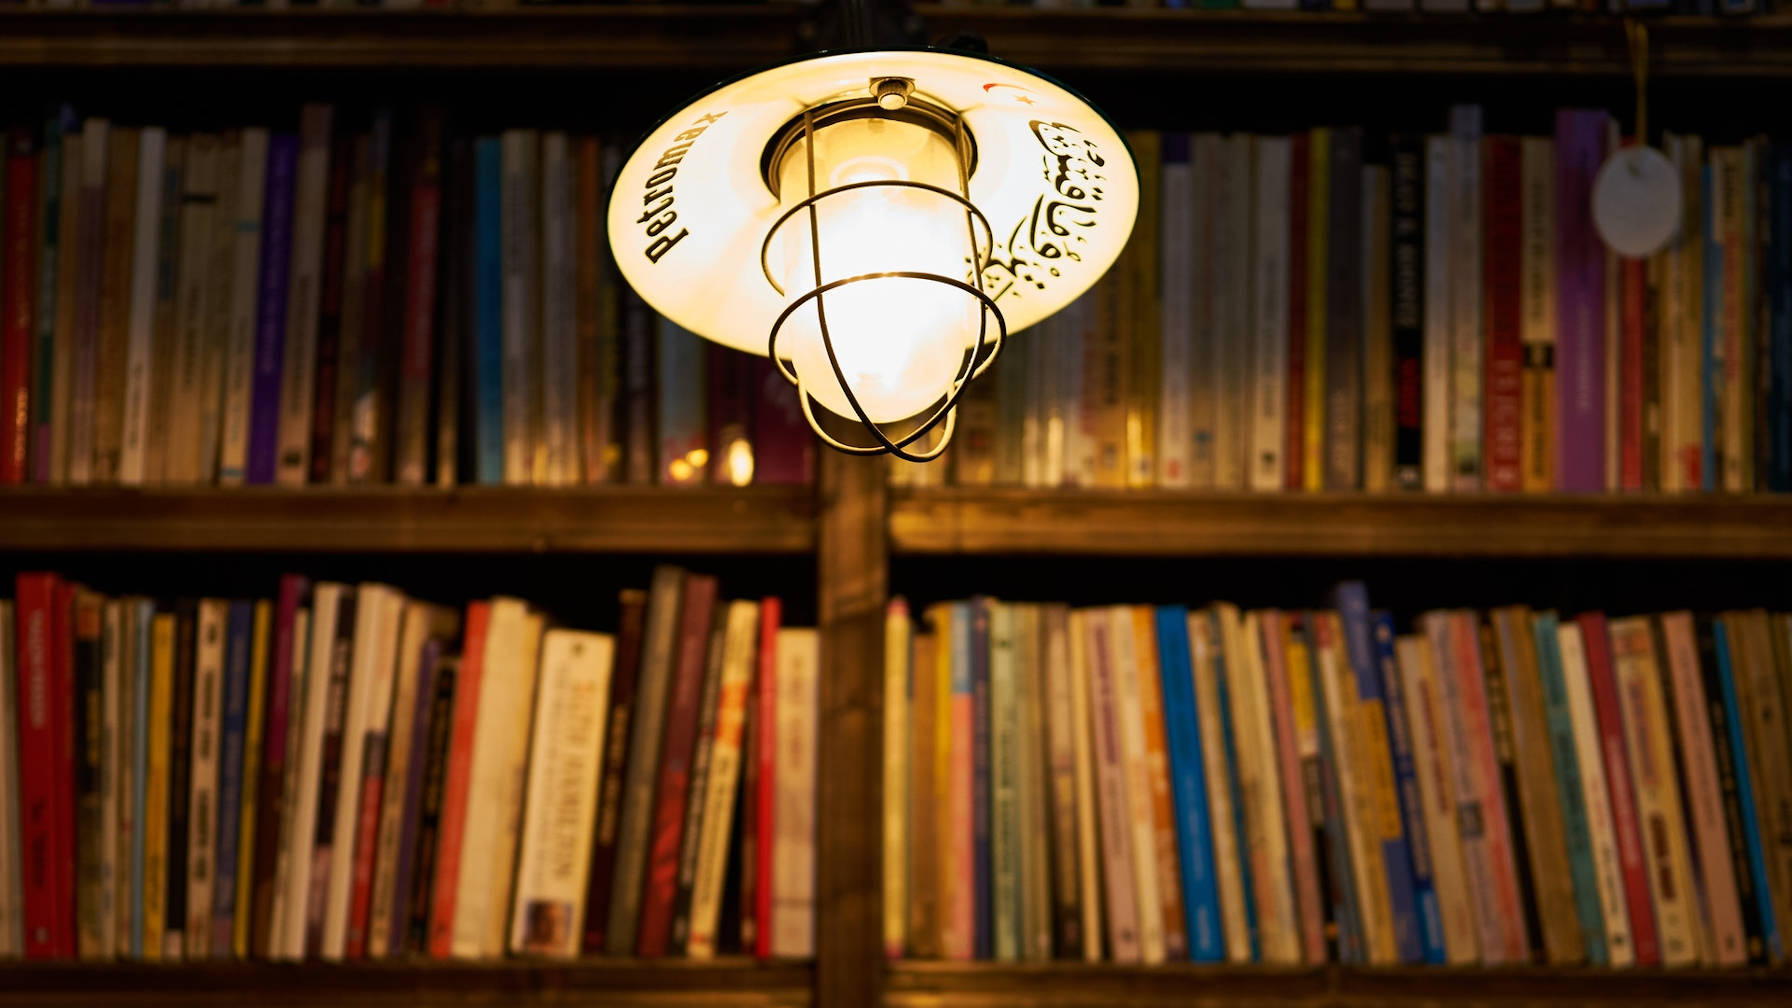 Shelves filled with books with a hanging light in front, illuminating them.